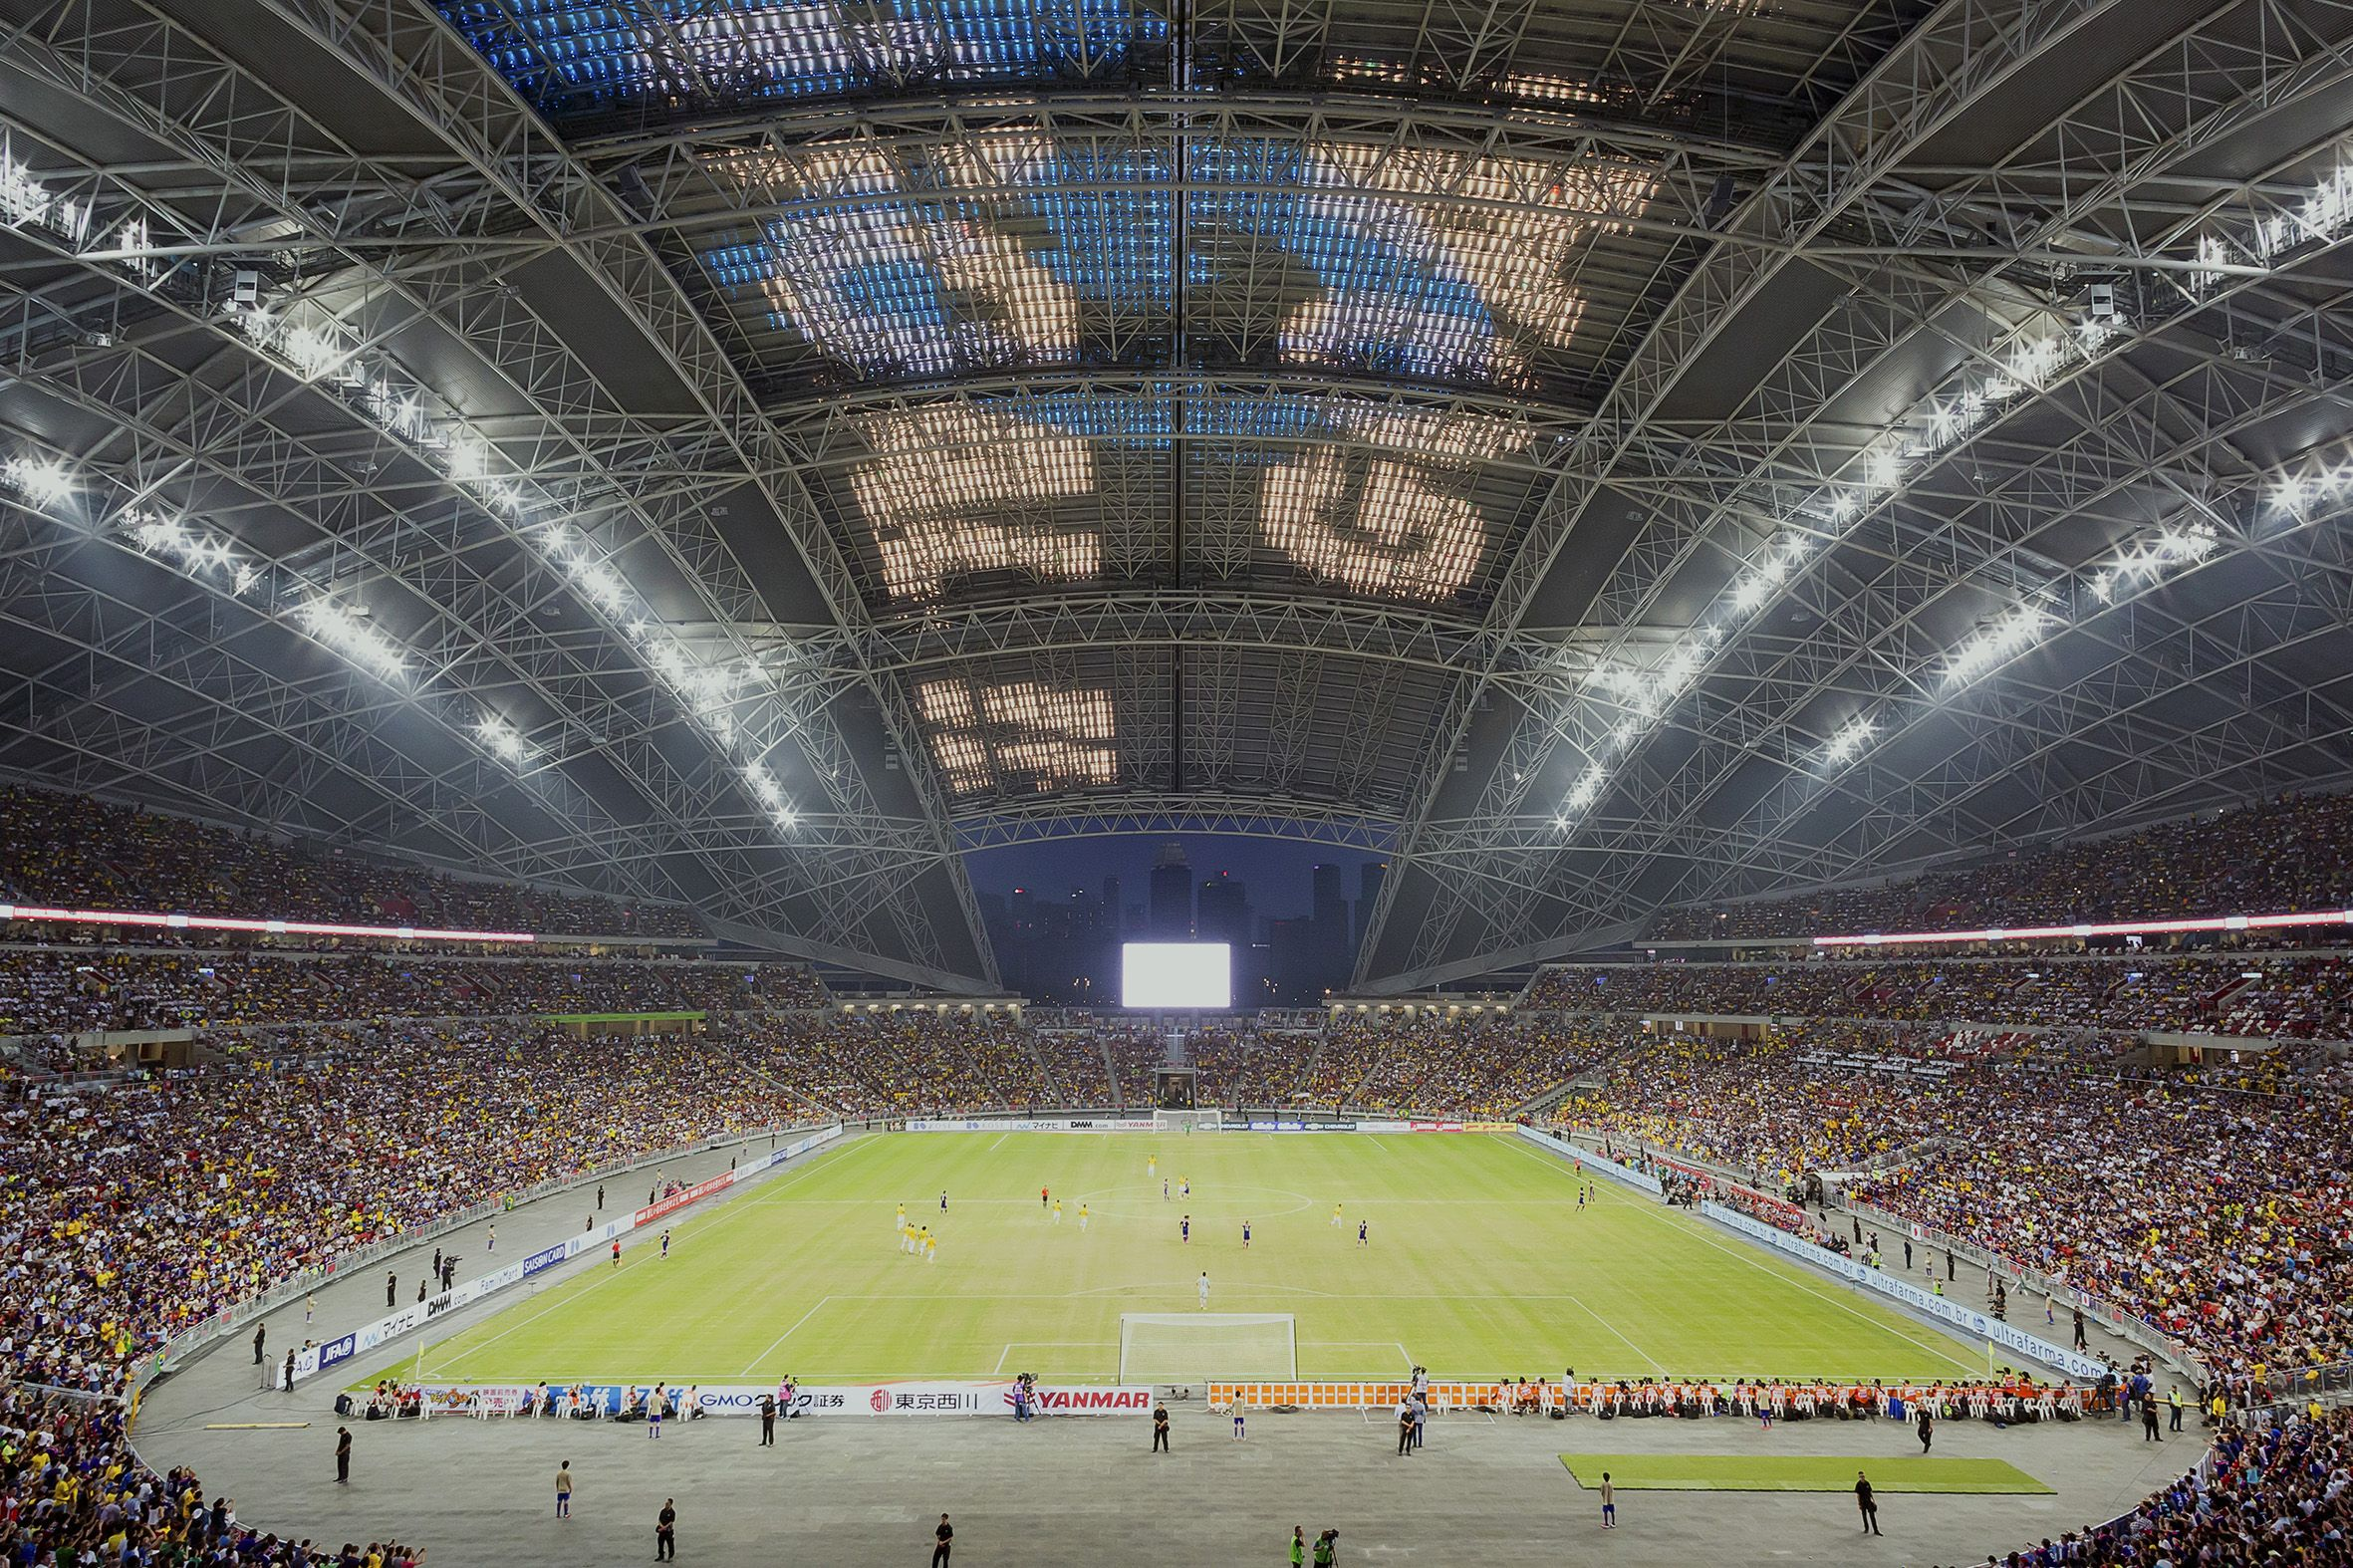 Official Opening of Singapore Sports Hub With Singapore Sports Hub